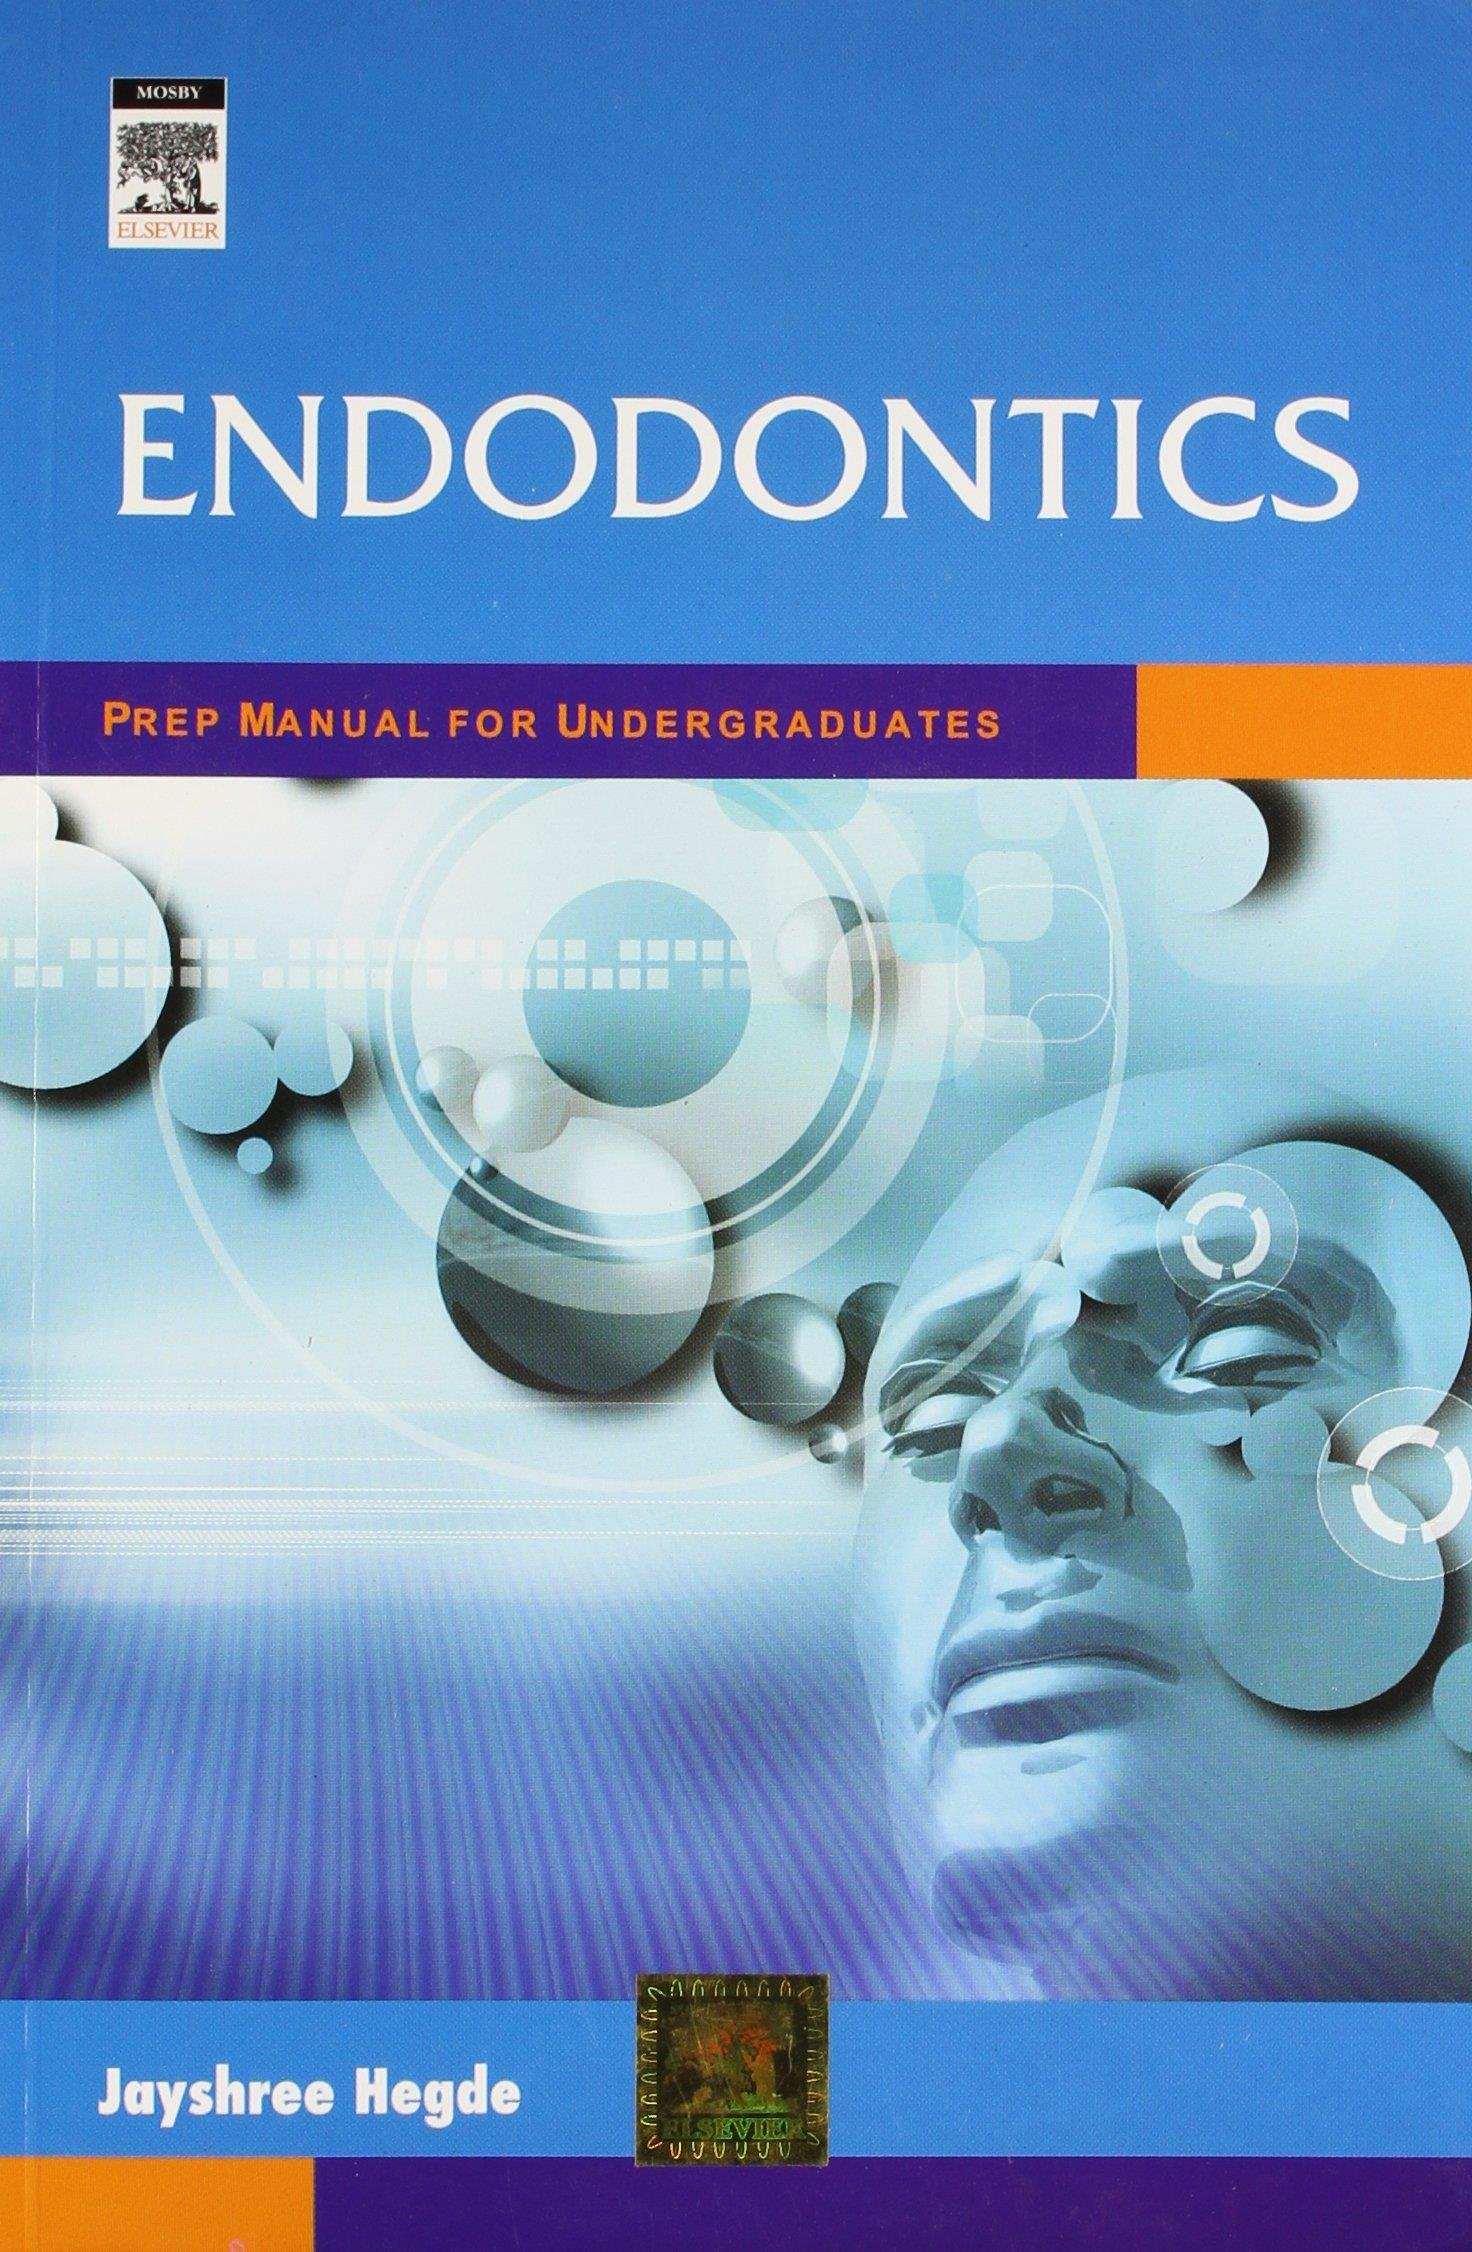 Amazon.com: Endodontics: Prep Manual for Undergraduates ...